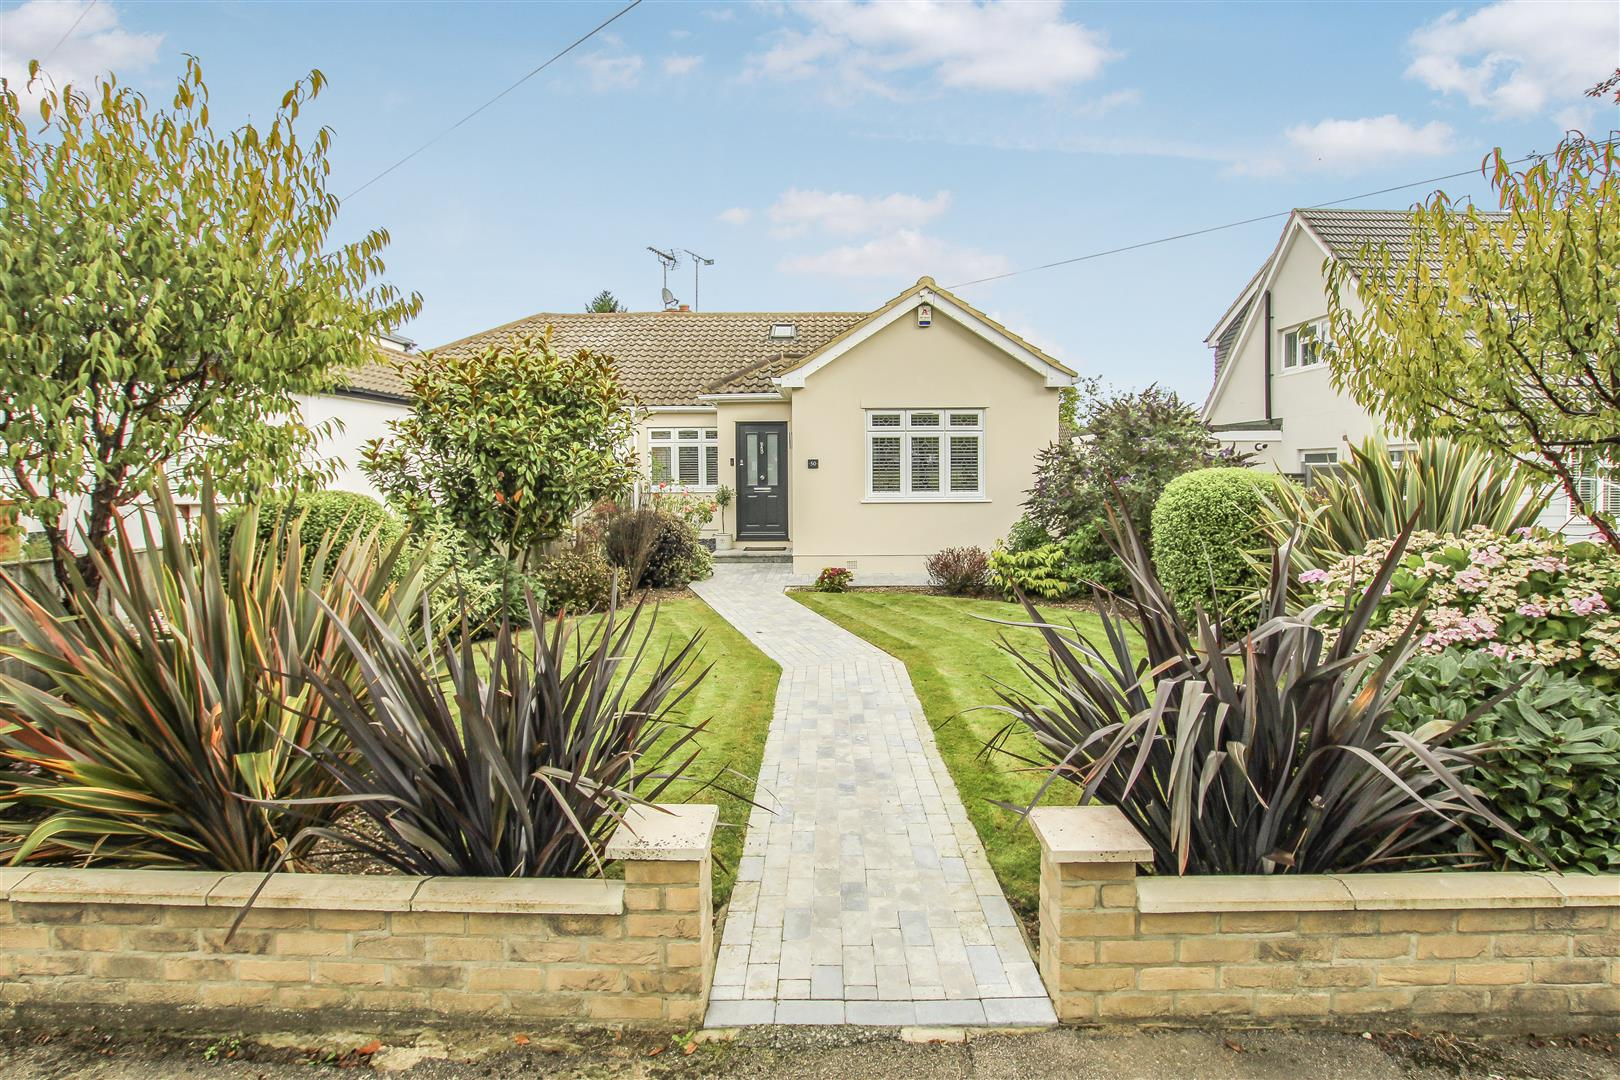 The Meadows, Ingrave, Brentwood